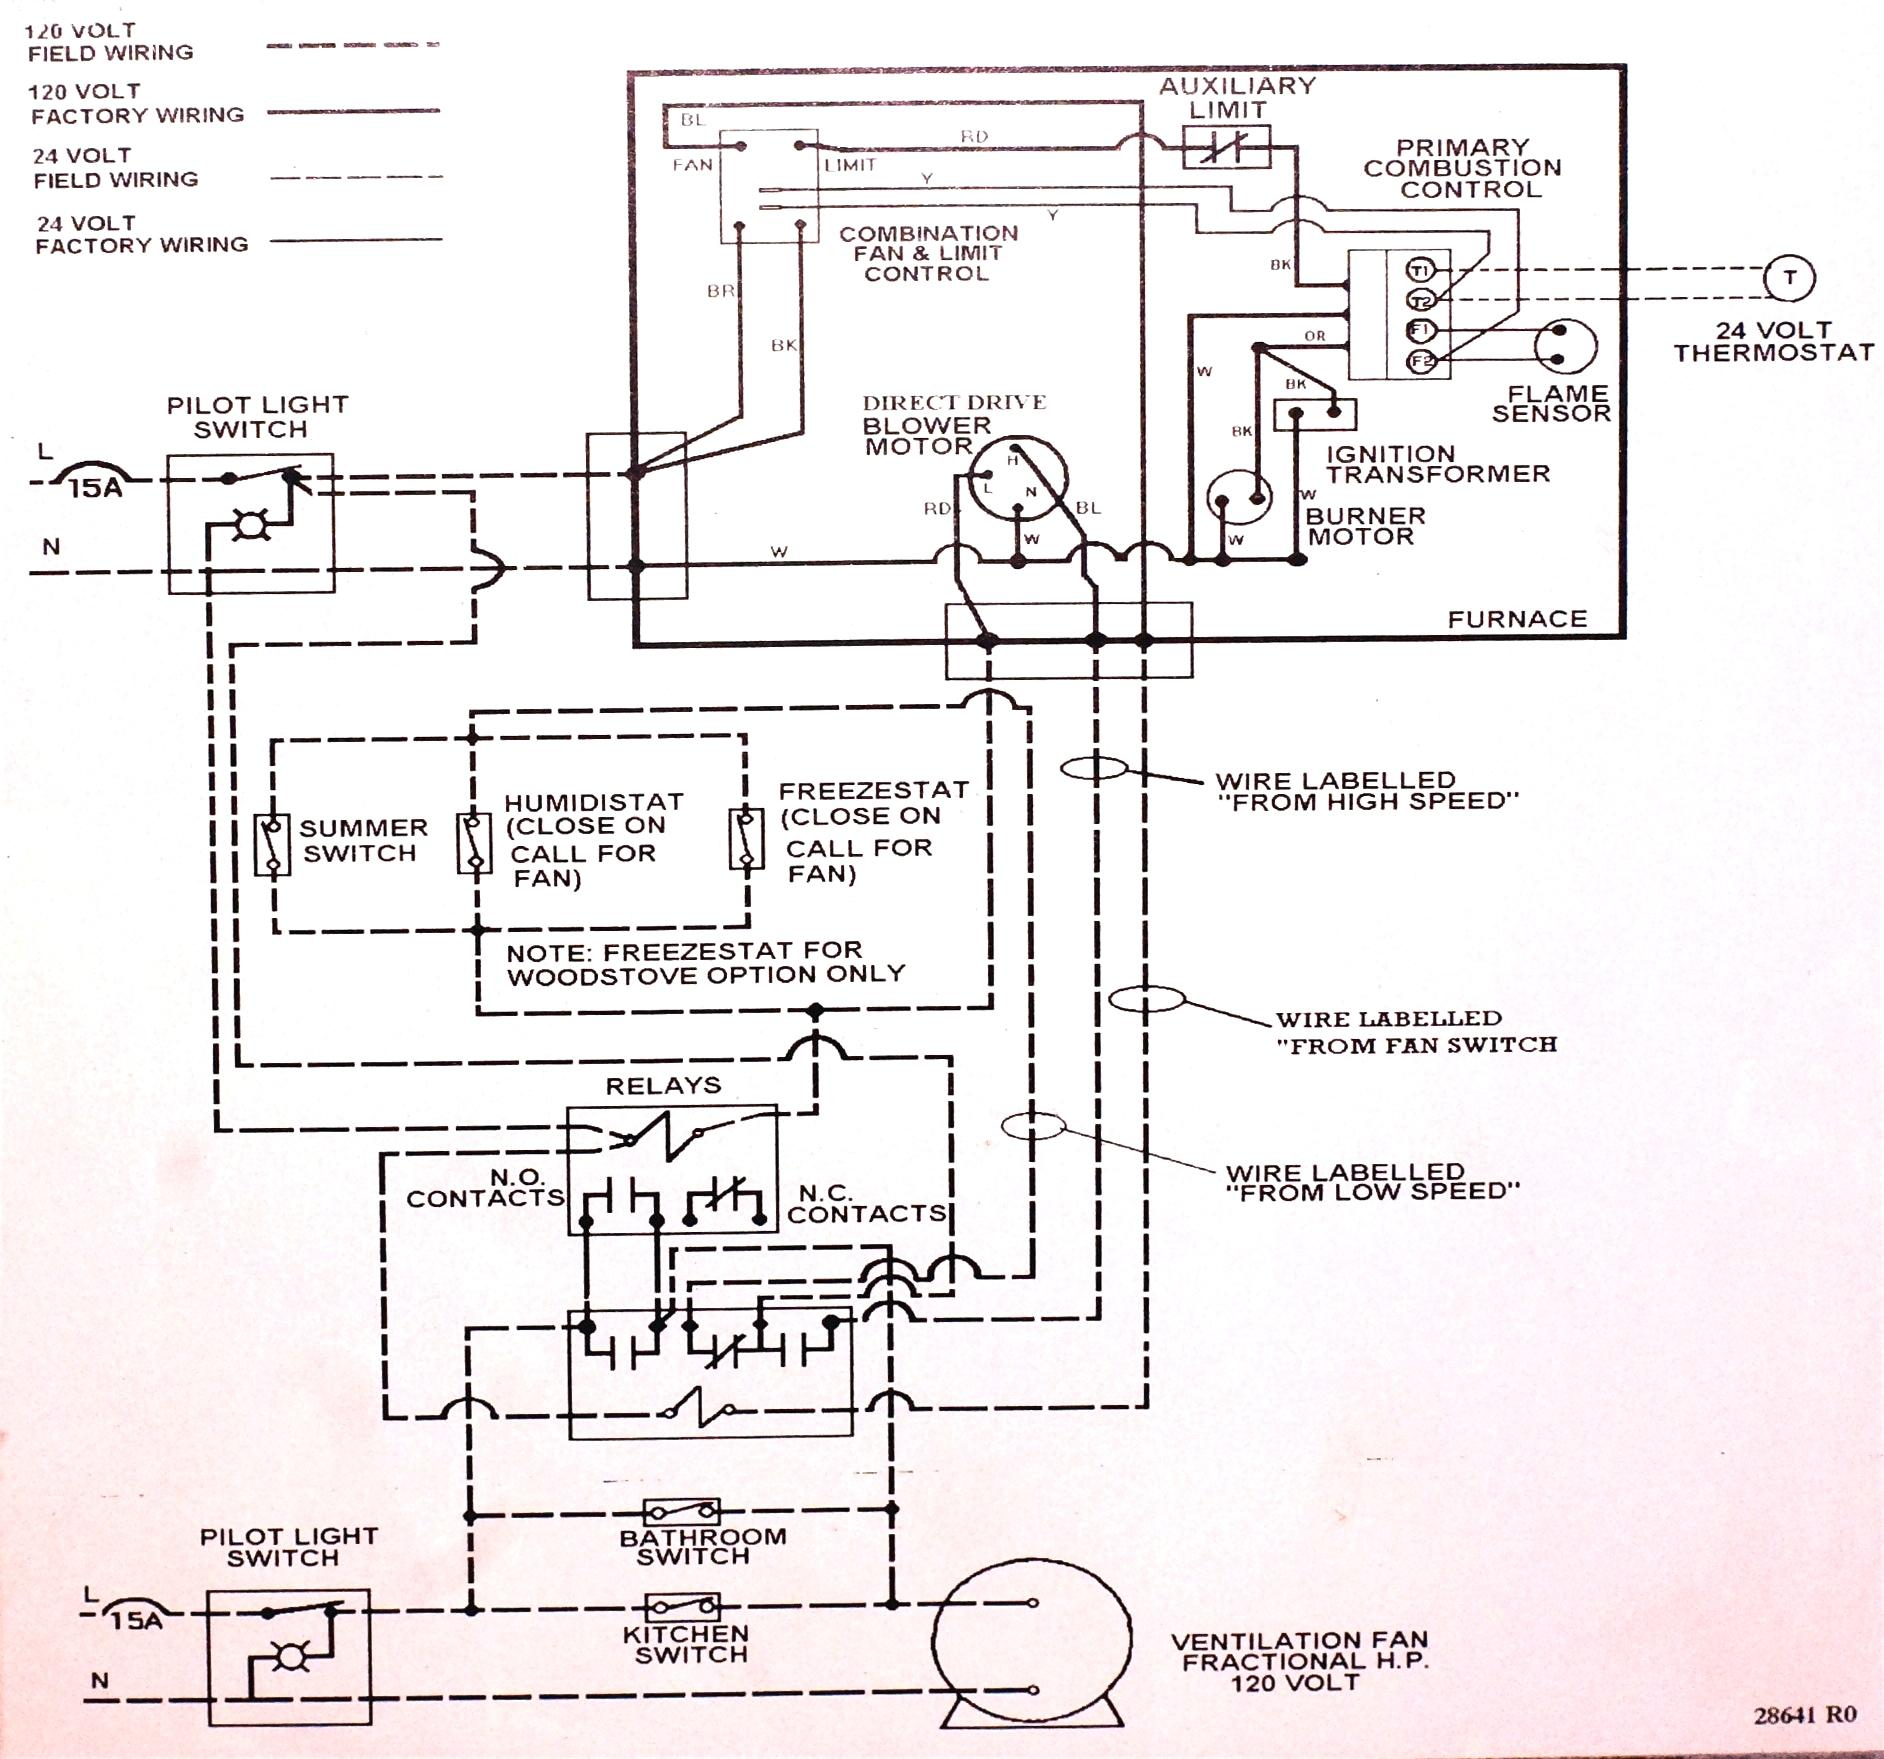 nordyne thermostat wiring diagram Collection-Diagram Nordyne Thermostat Wiring Ideas Carrier And 19-o